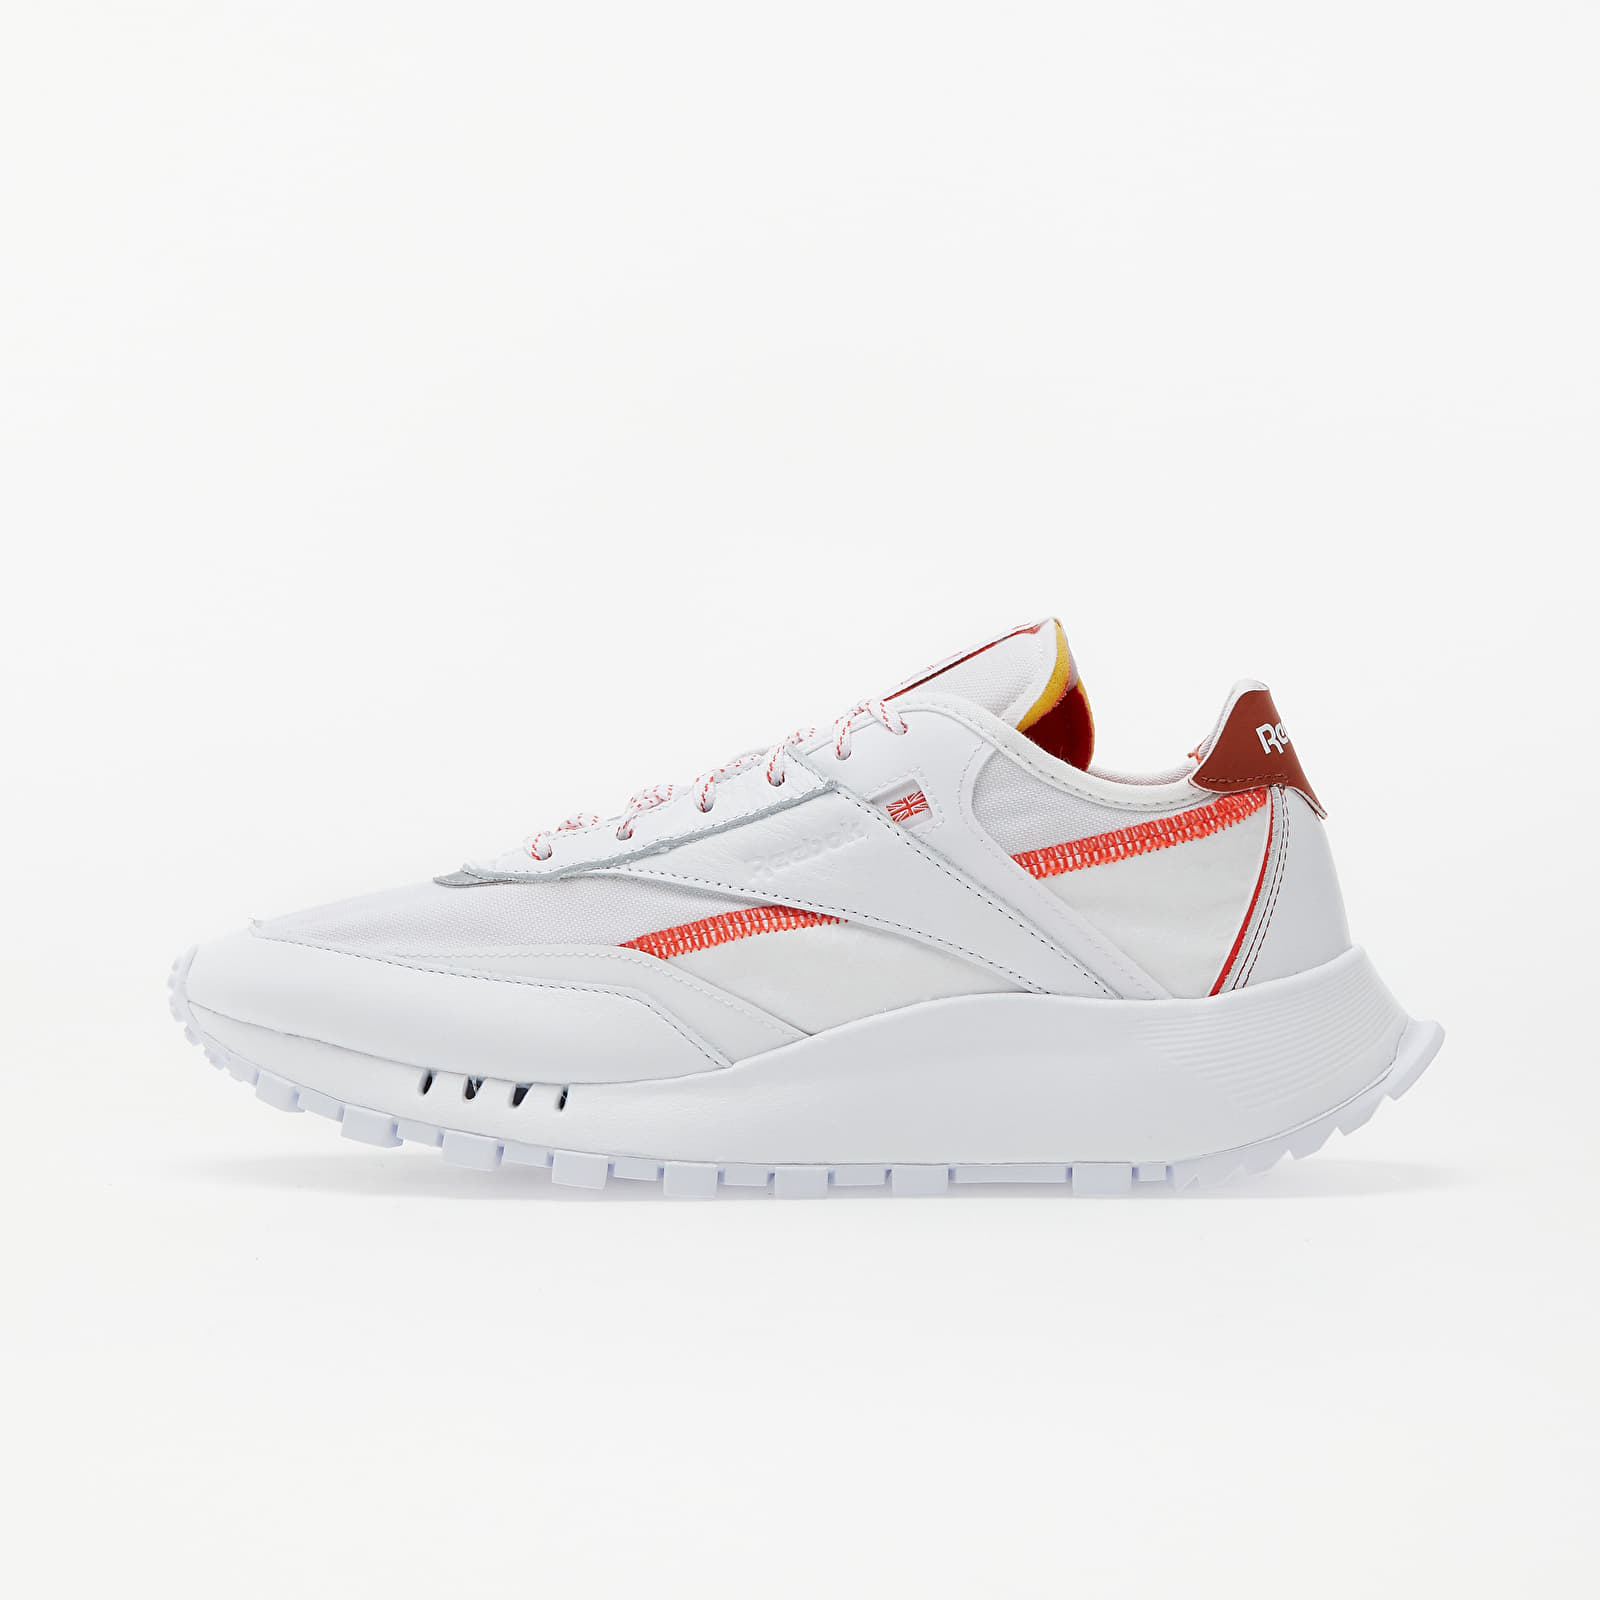 Reebok Classic Legacy Pure White/ Dynamic Red/ Baked Earth EUR 45